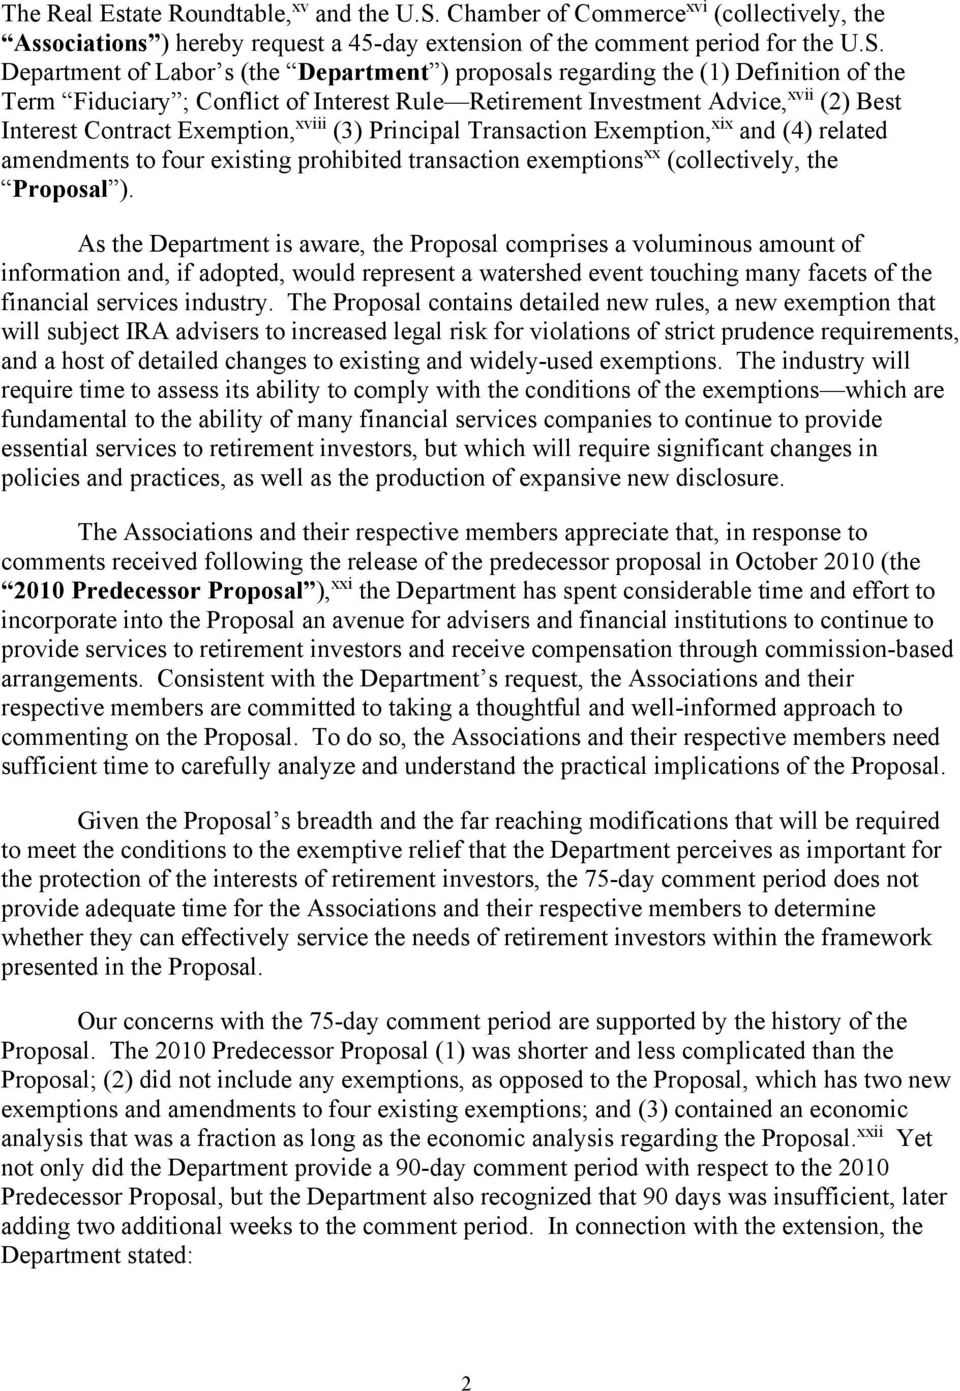 Department of Labor s (the Department ) proposals regarding the (1) Definition of the Term Fiduciary ; Conflict of Interest Rule Retirement Investment Advice, xvii (2) Best Interest Contract